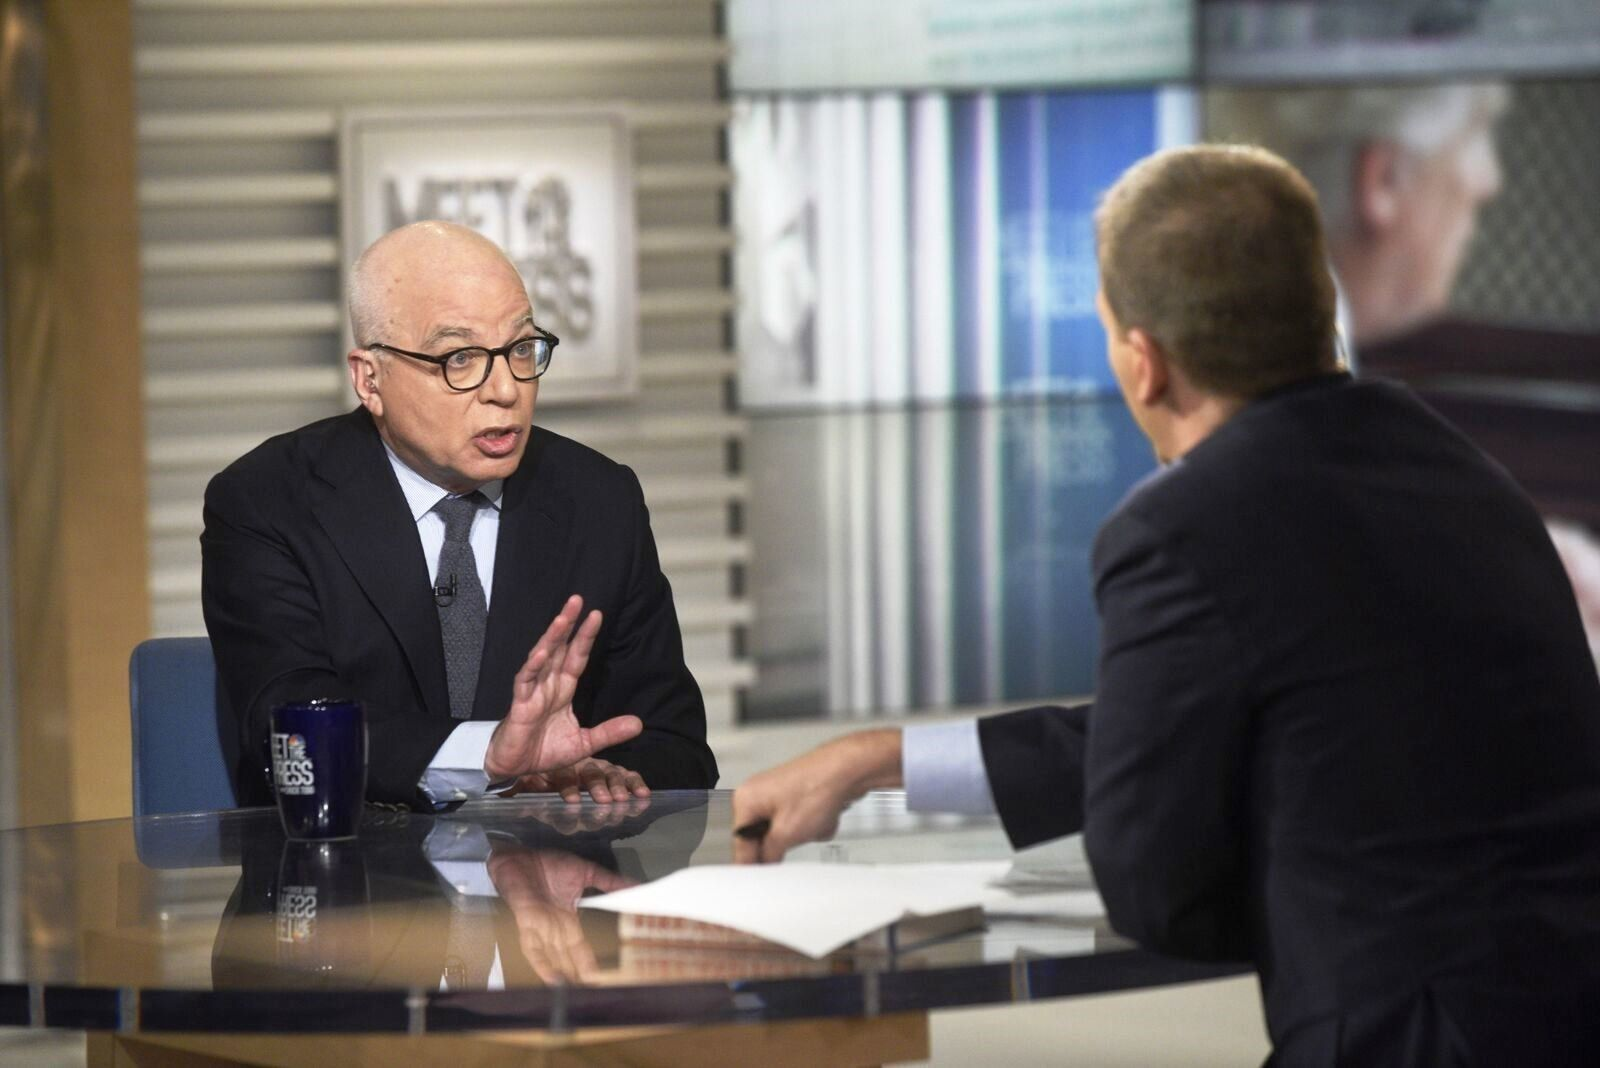 Fire and Fury author Michael Wolff spoke about concerns within the White House about President Donald Trumps mental health